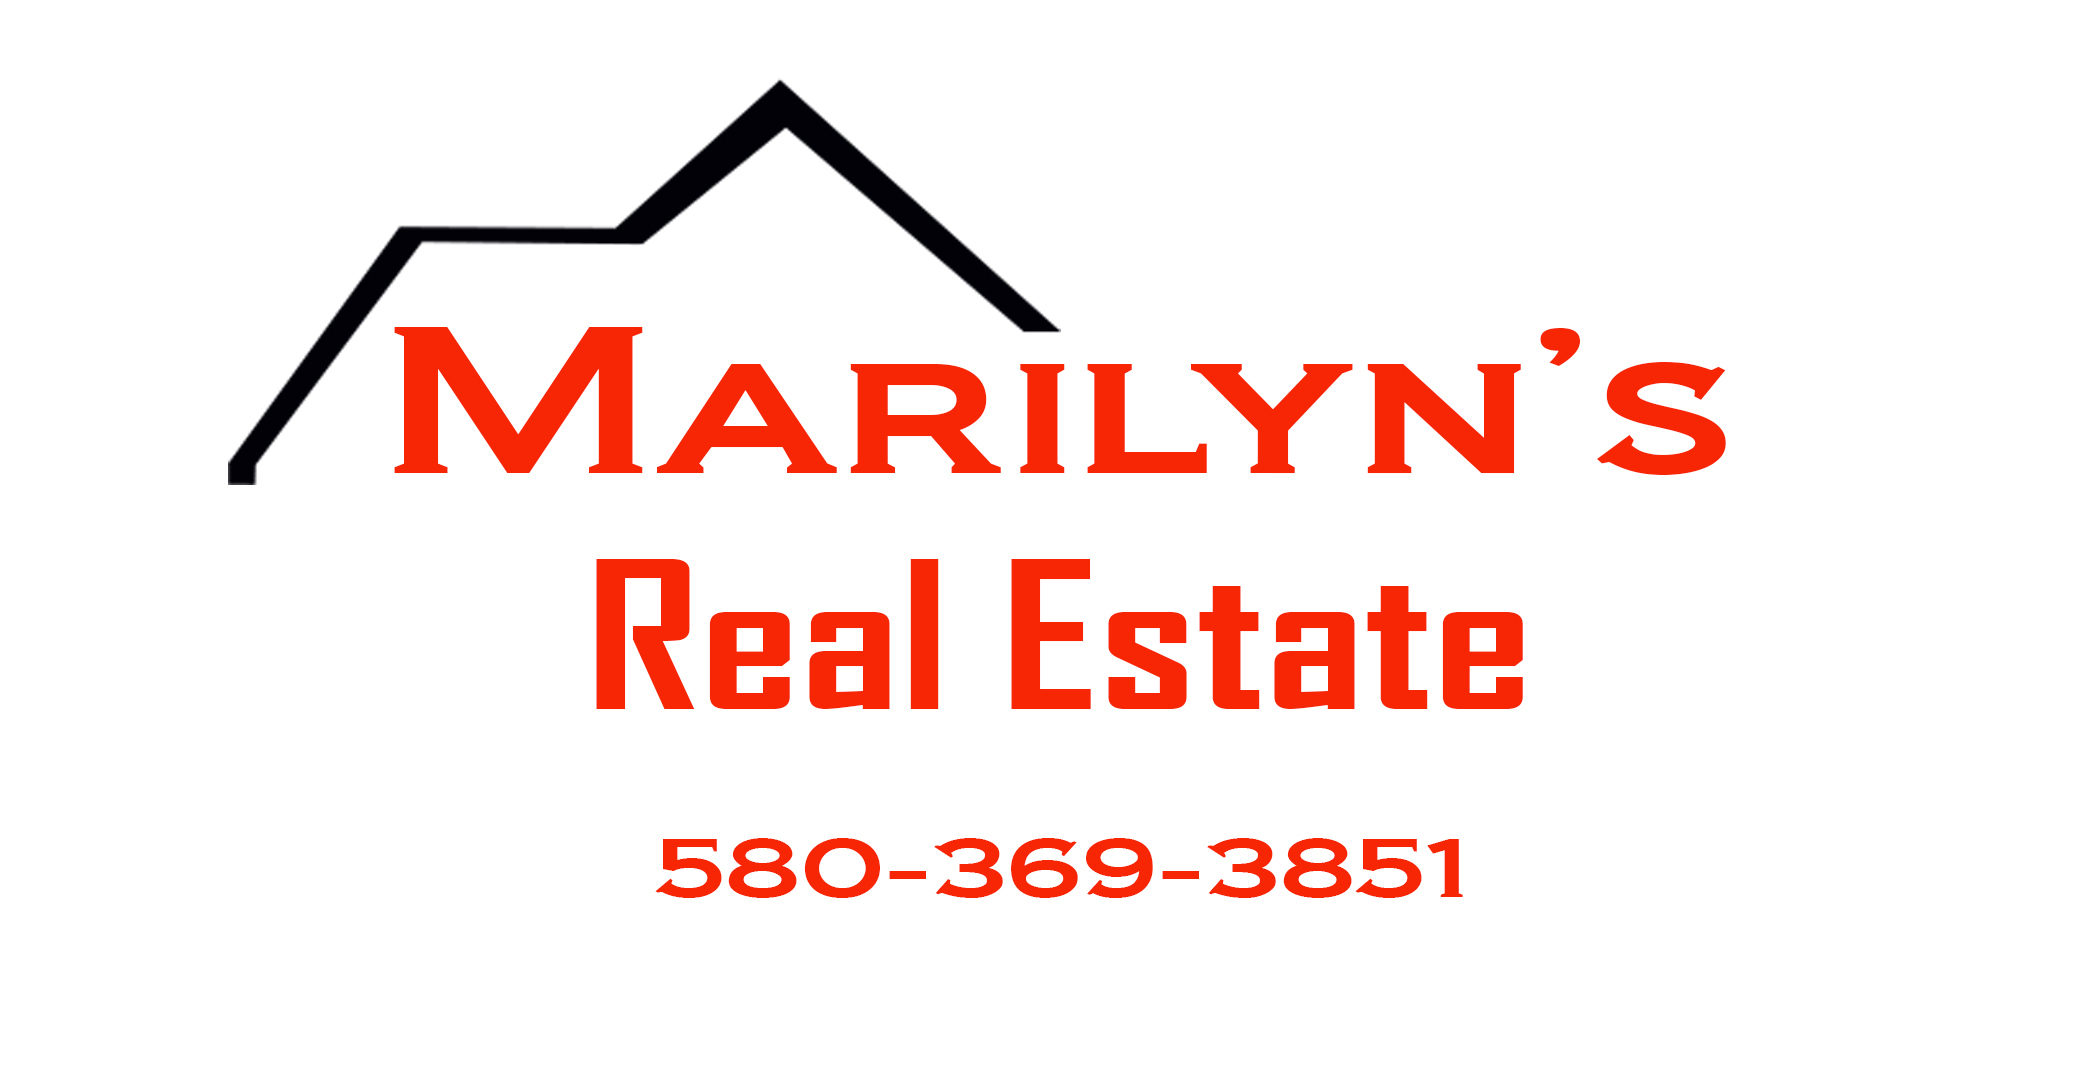 Marilyn's Real Estate.jpg